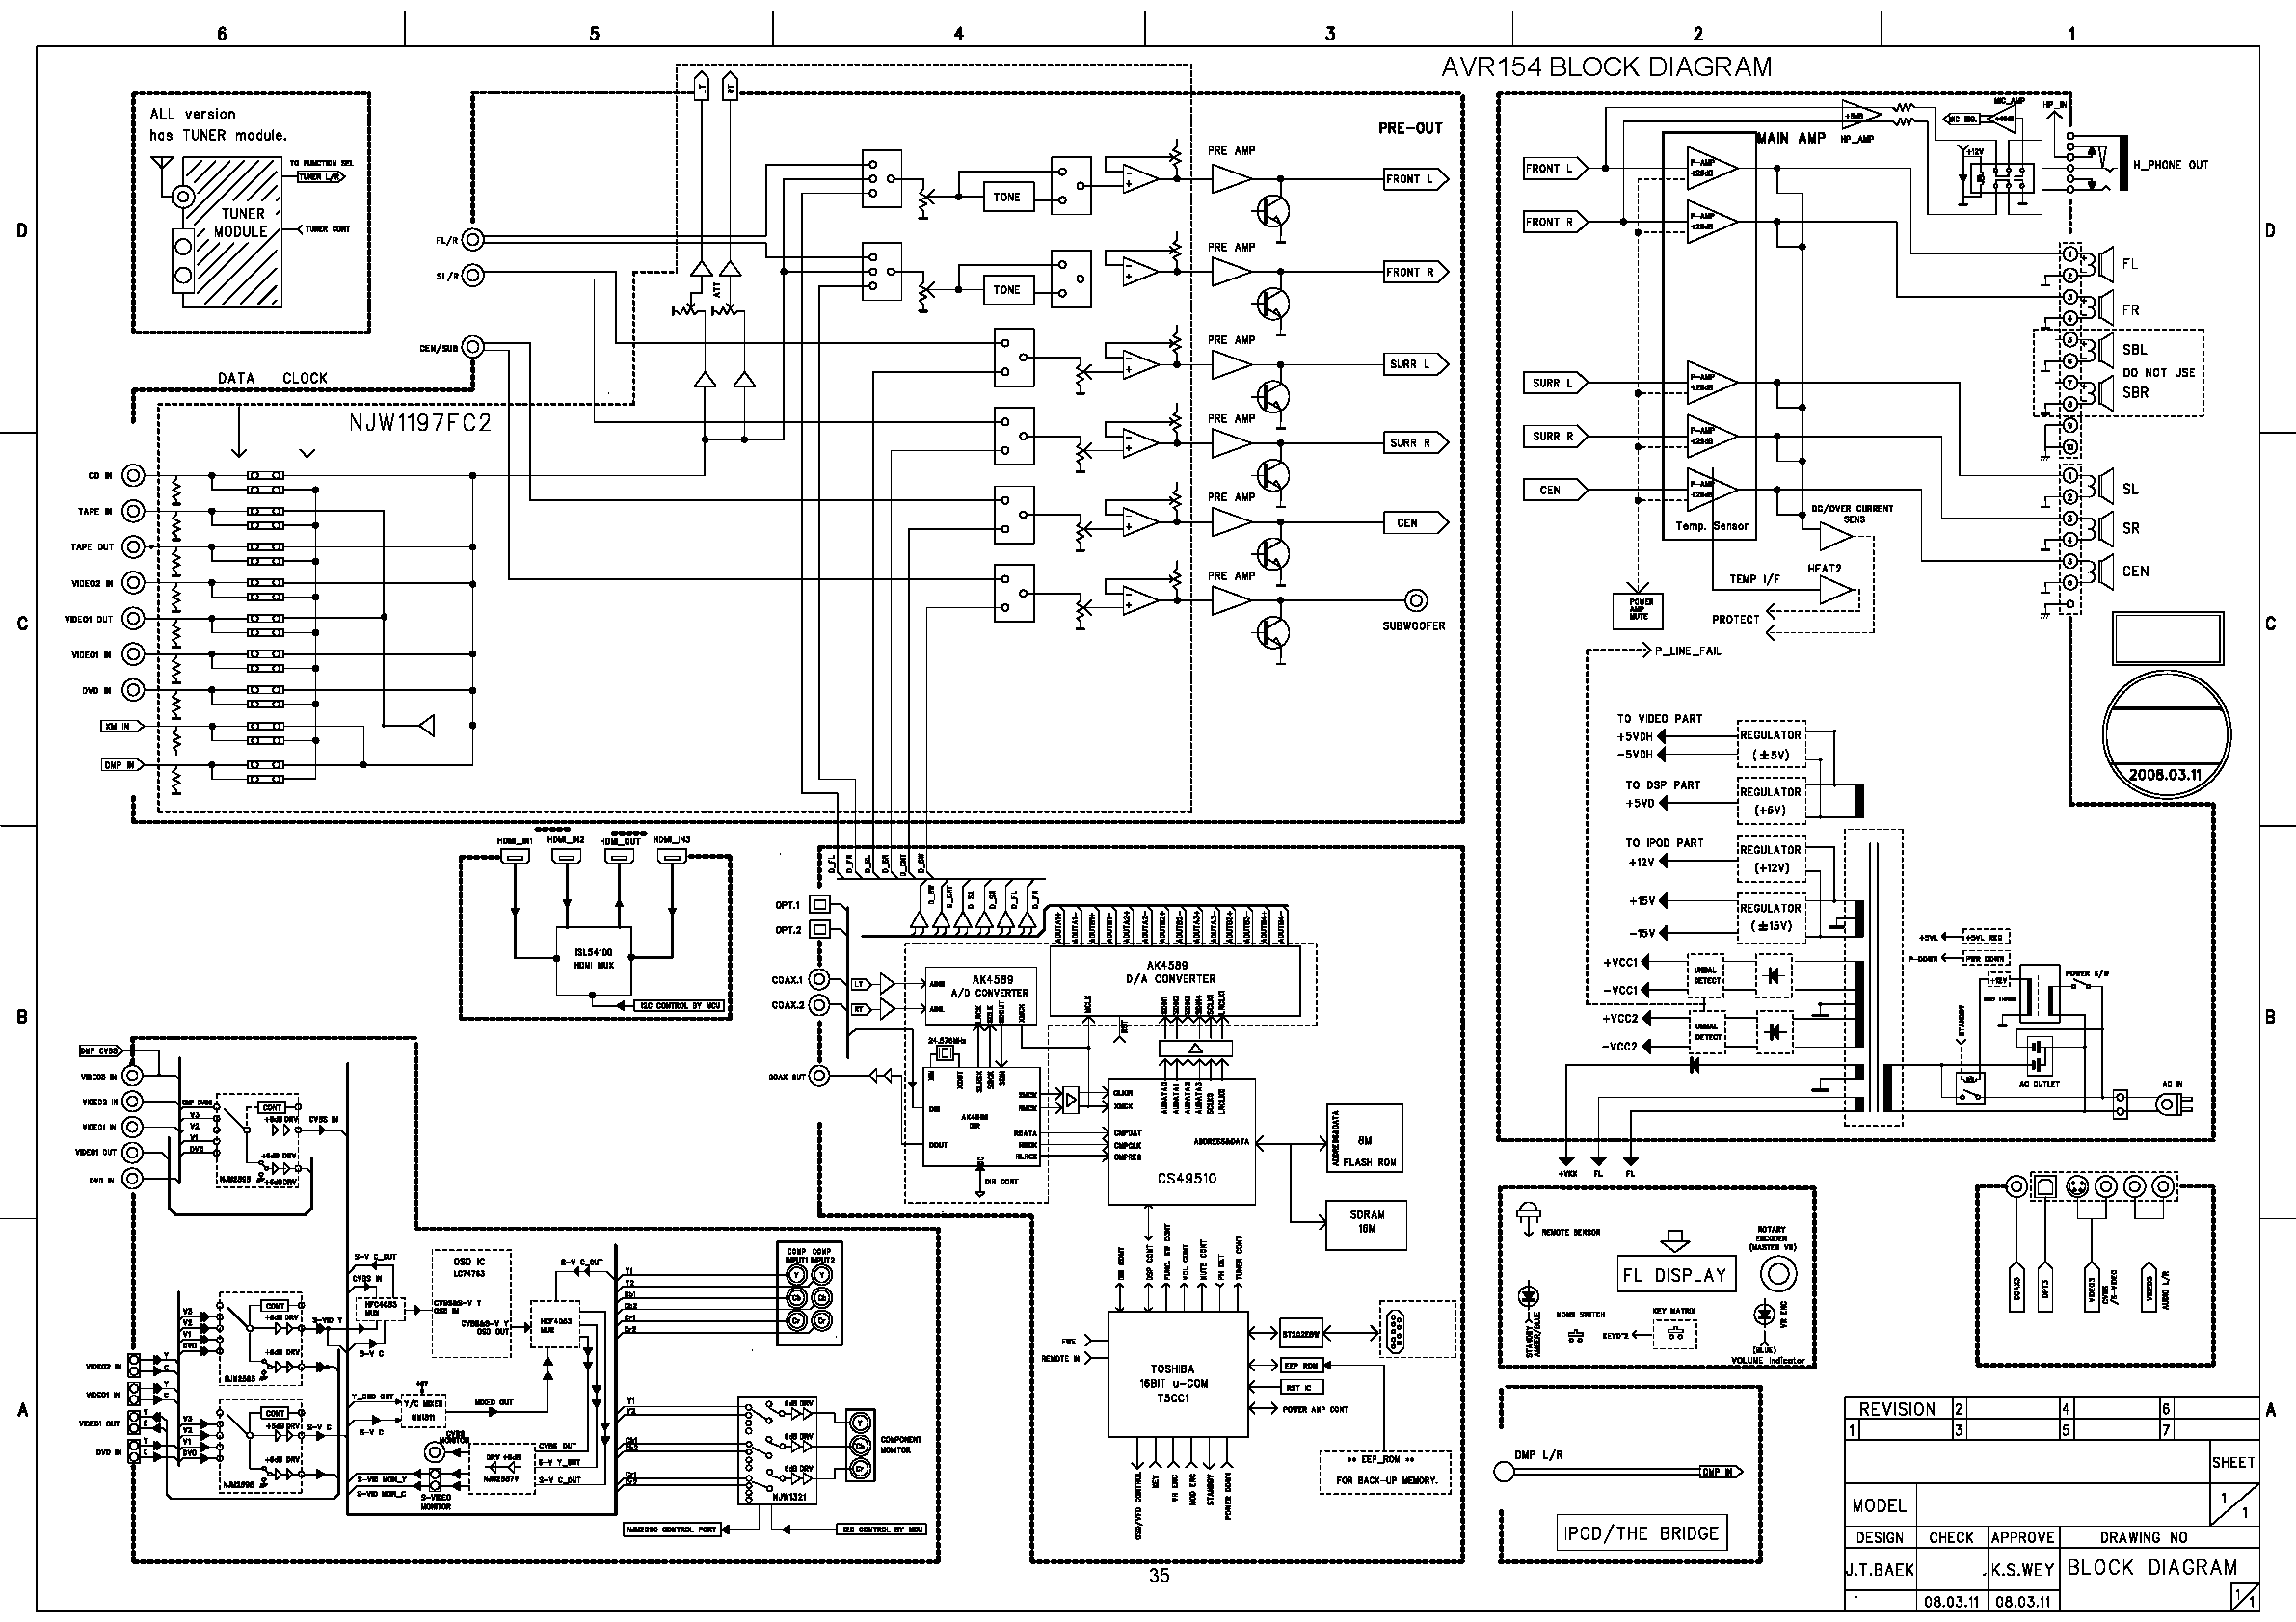 1992 hyundai wiring diagram wiring diagram for light switch u2022 rh lomond tw